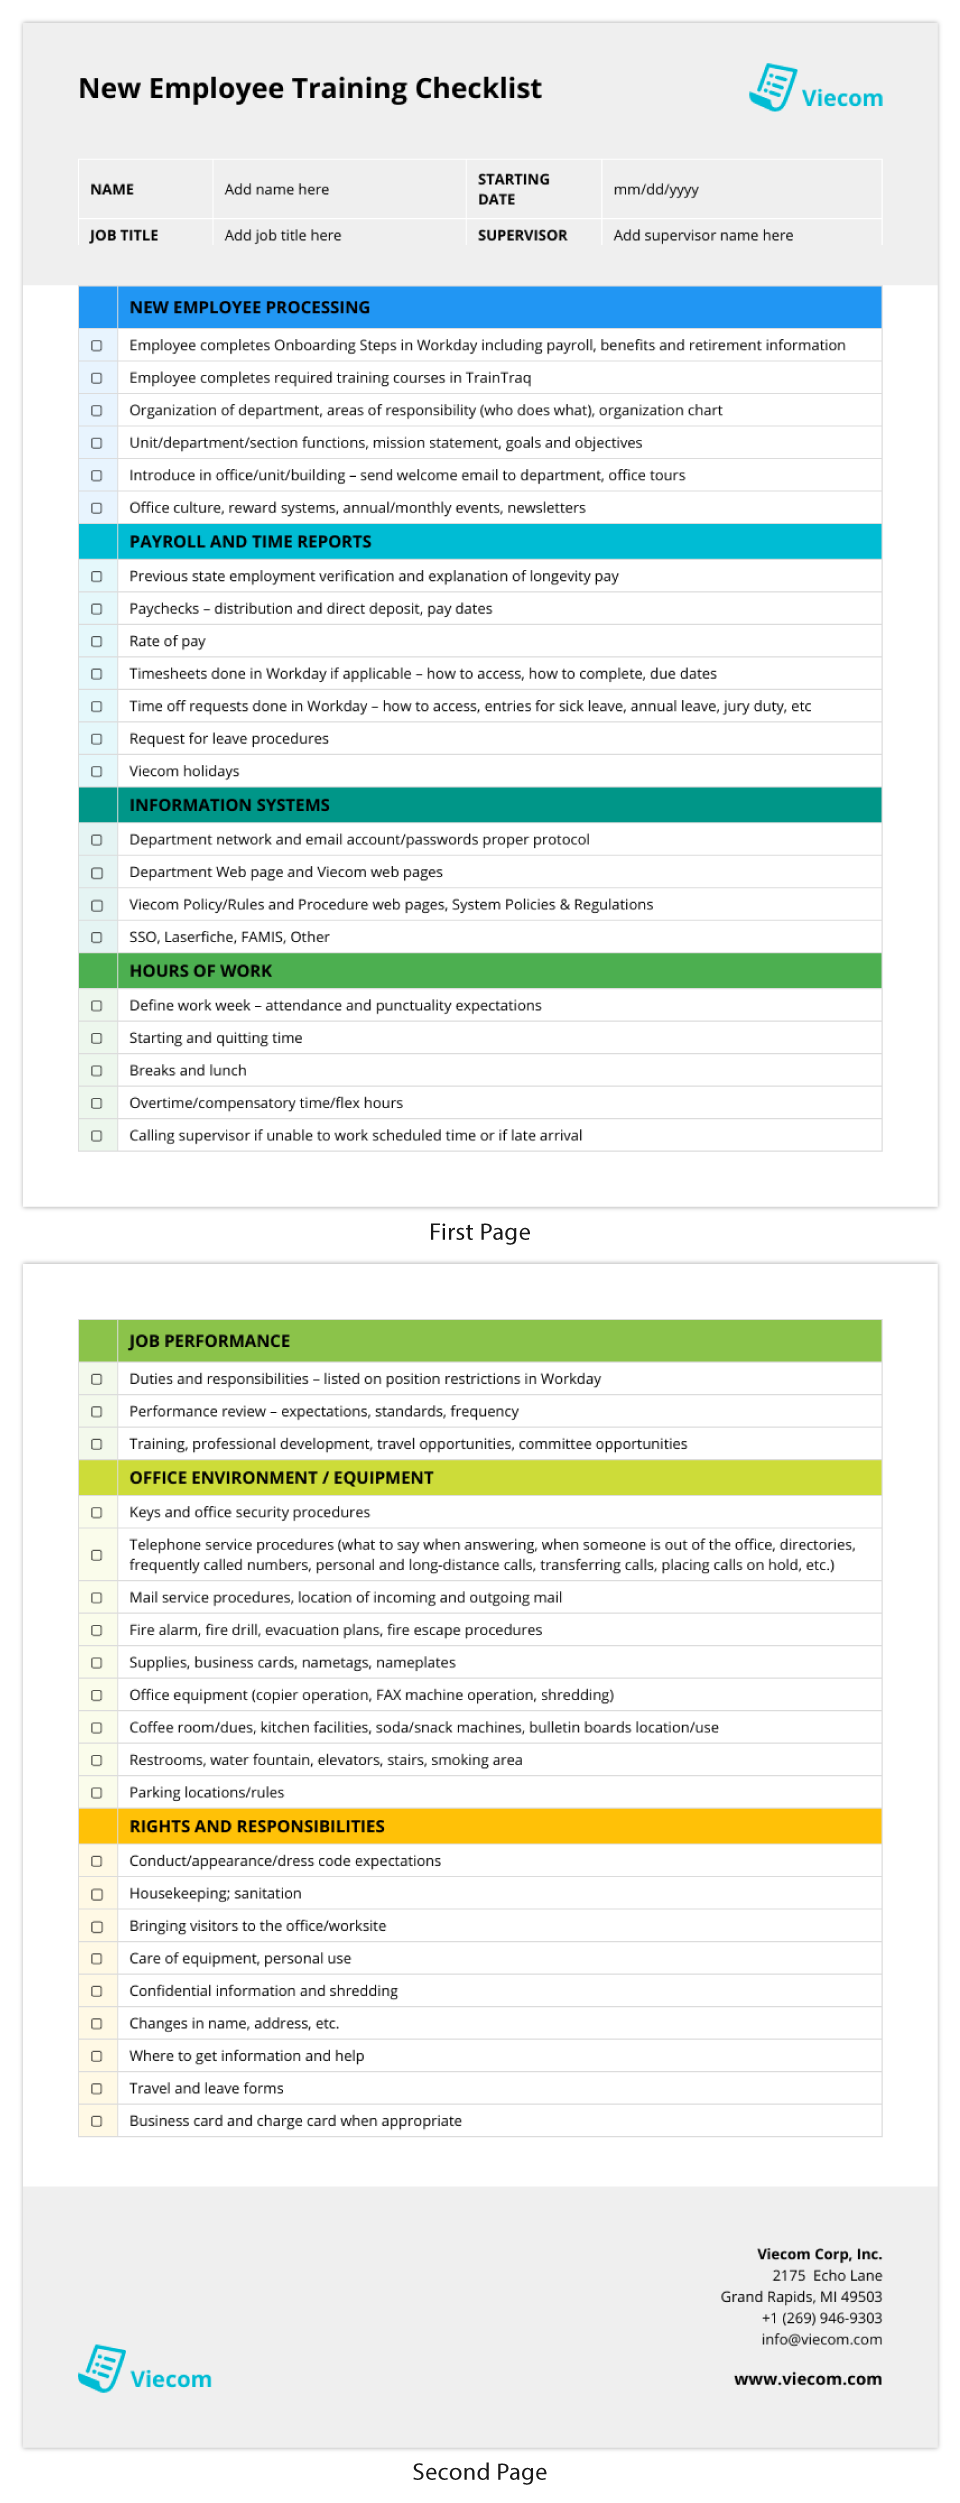 Checklist Infographic Template New Hire Onboarding 2 Pages